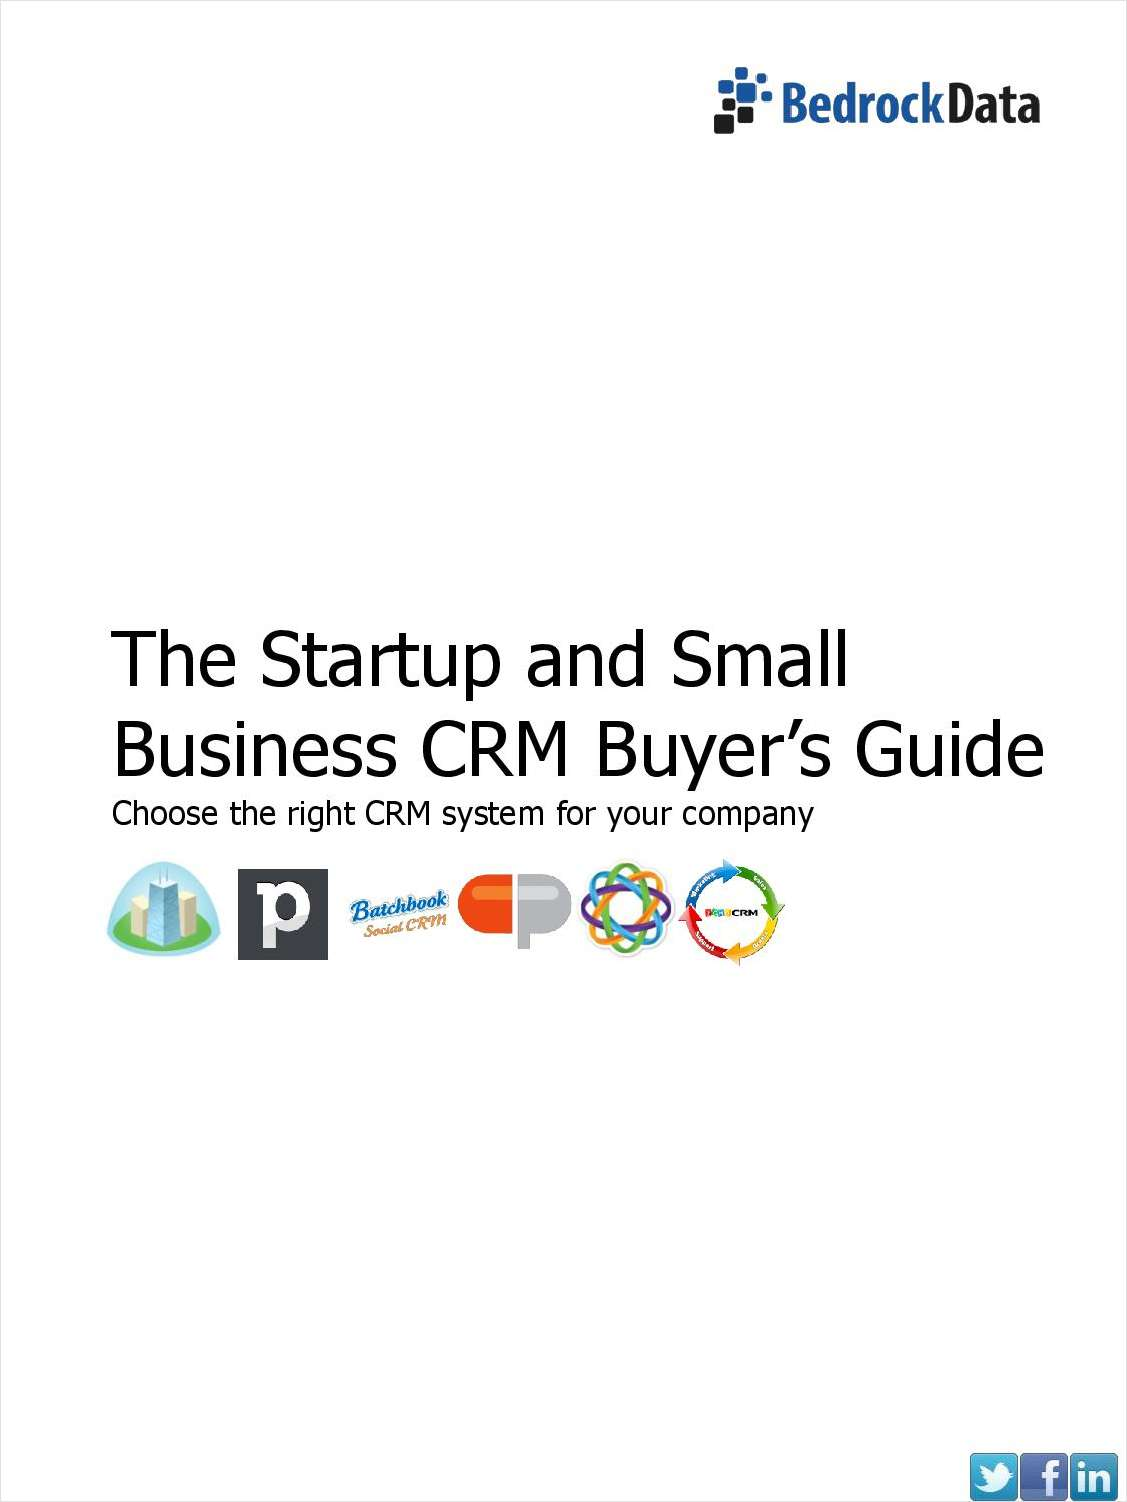 The Startup and Small Business CRM Buyer's Guide